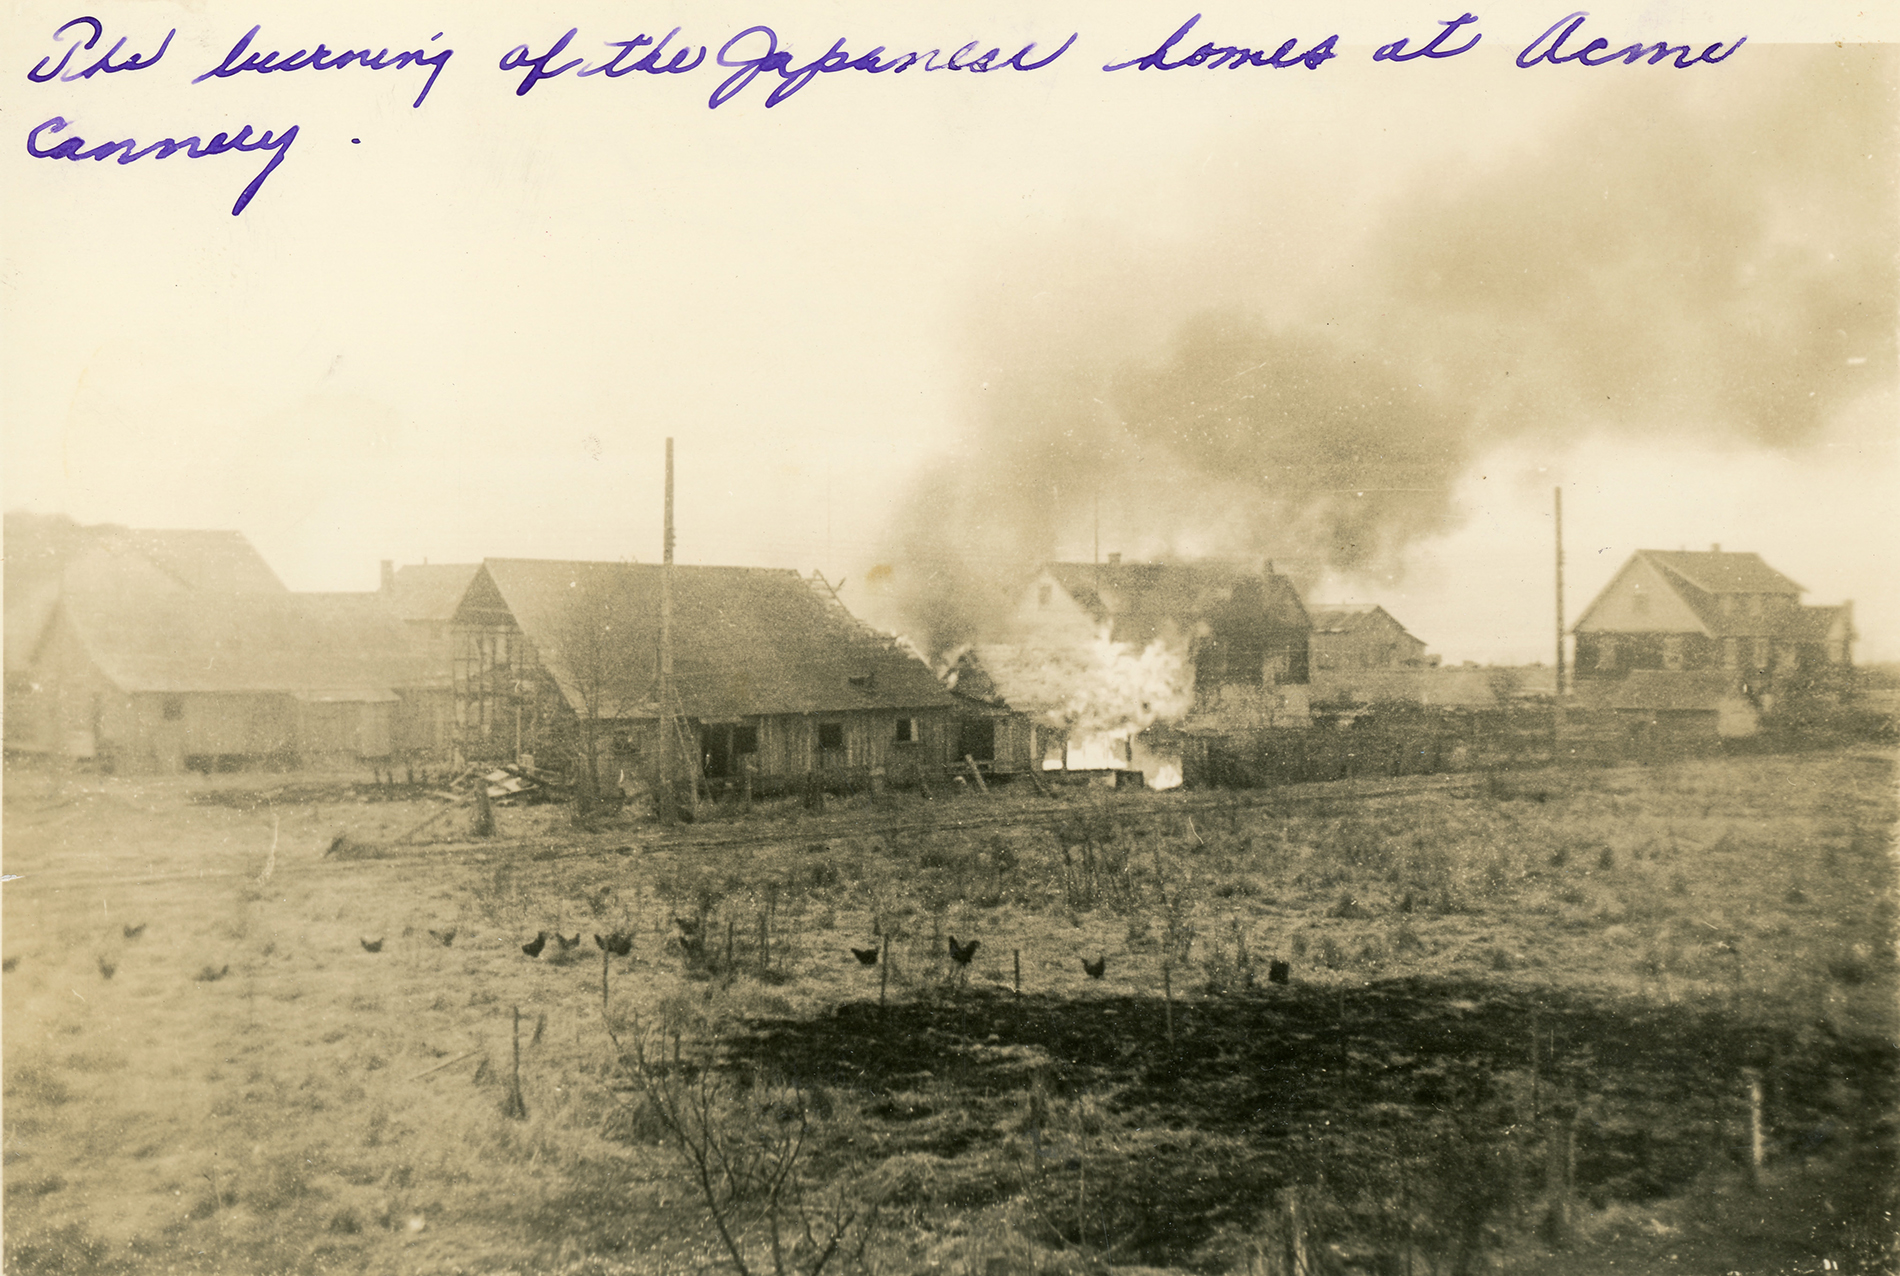 Four cannery bunk houses, two of which are on fire.